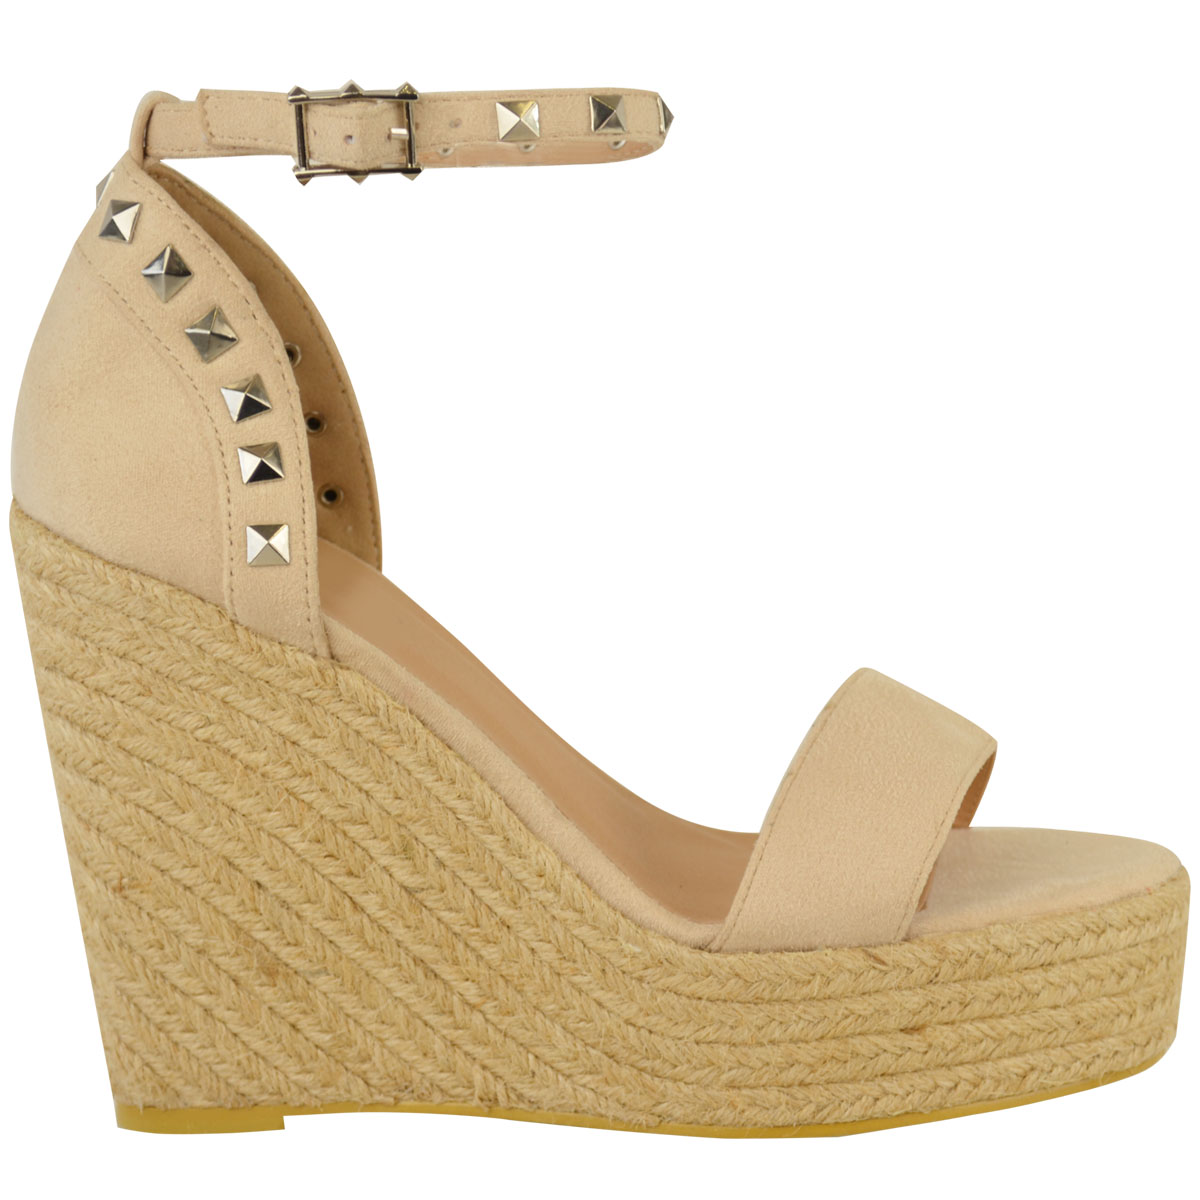 New-Womens-Stud-Espadrille-Wedge-Summer-Sandal-Ladies-Rose-Gold-Party-Shoes-Size thumbnail 11